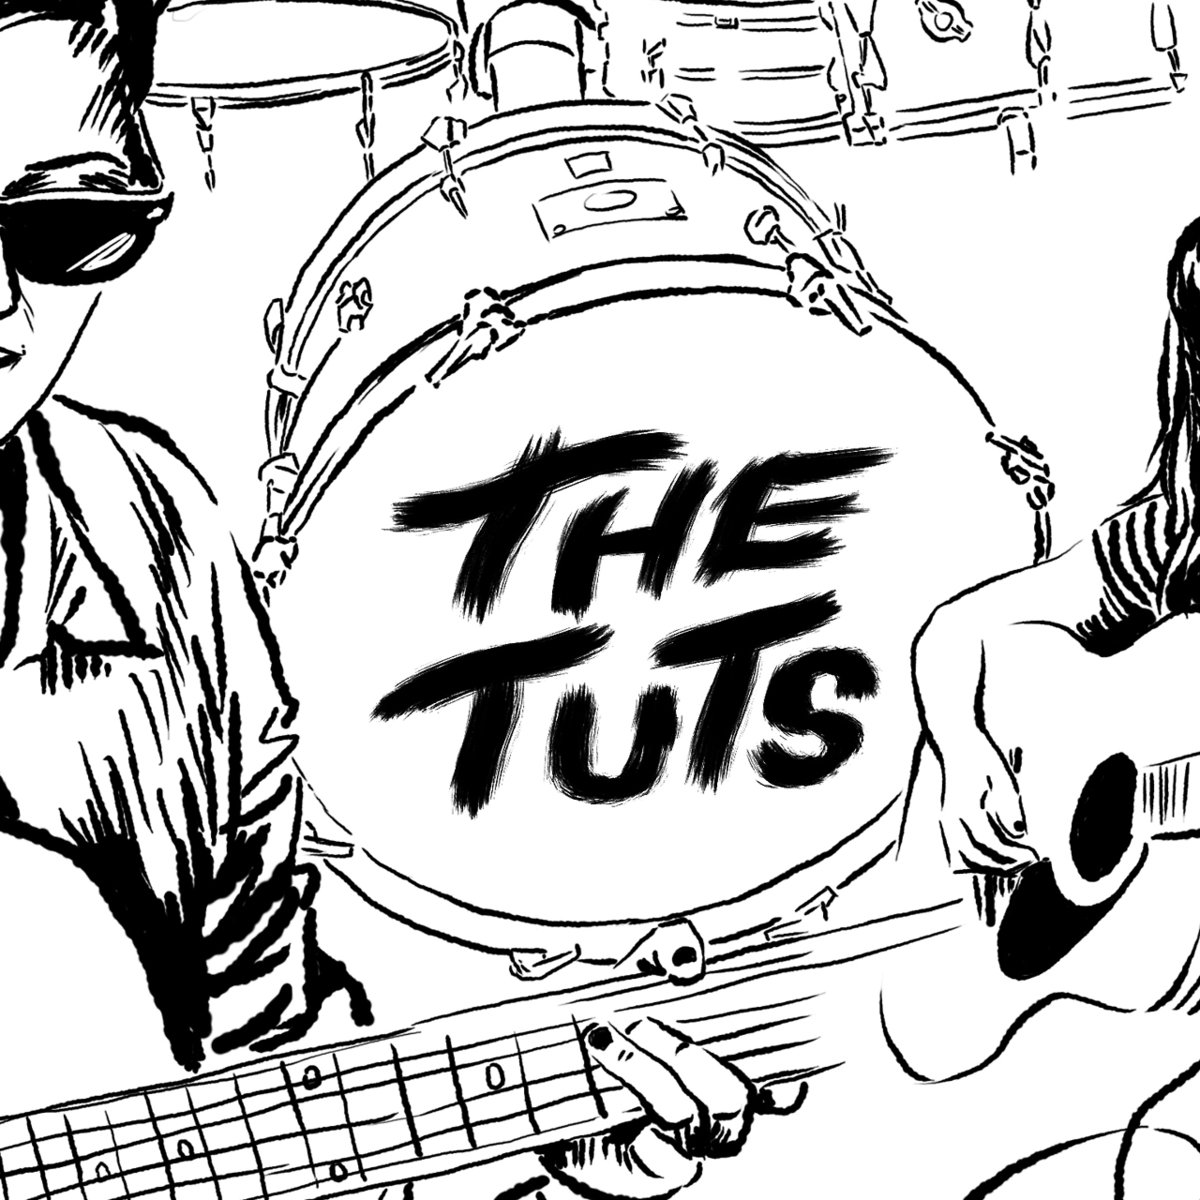 interview with the tuts